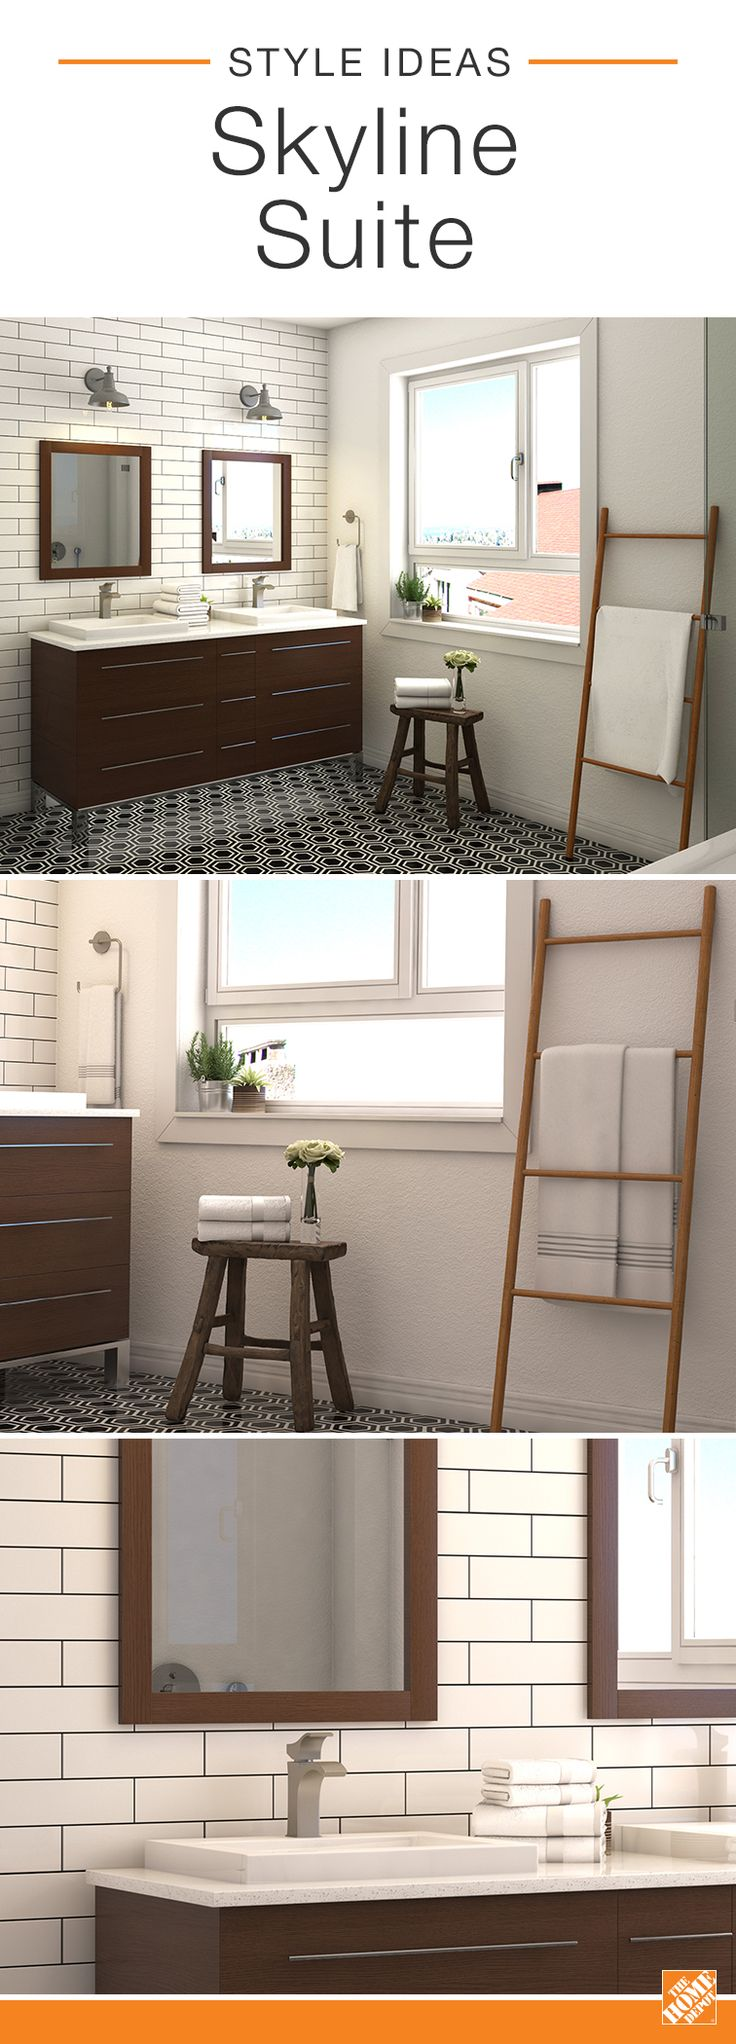 shop our decor department to customize your skyline suite today at the home depot - Home Depot Bathroom Design Ideas